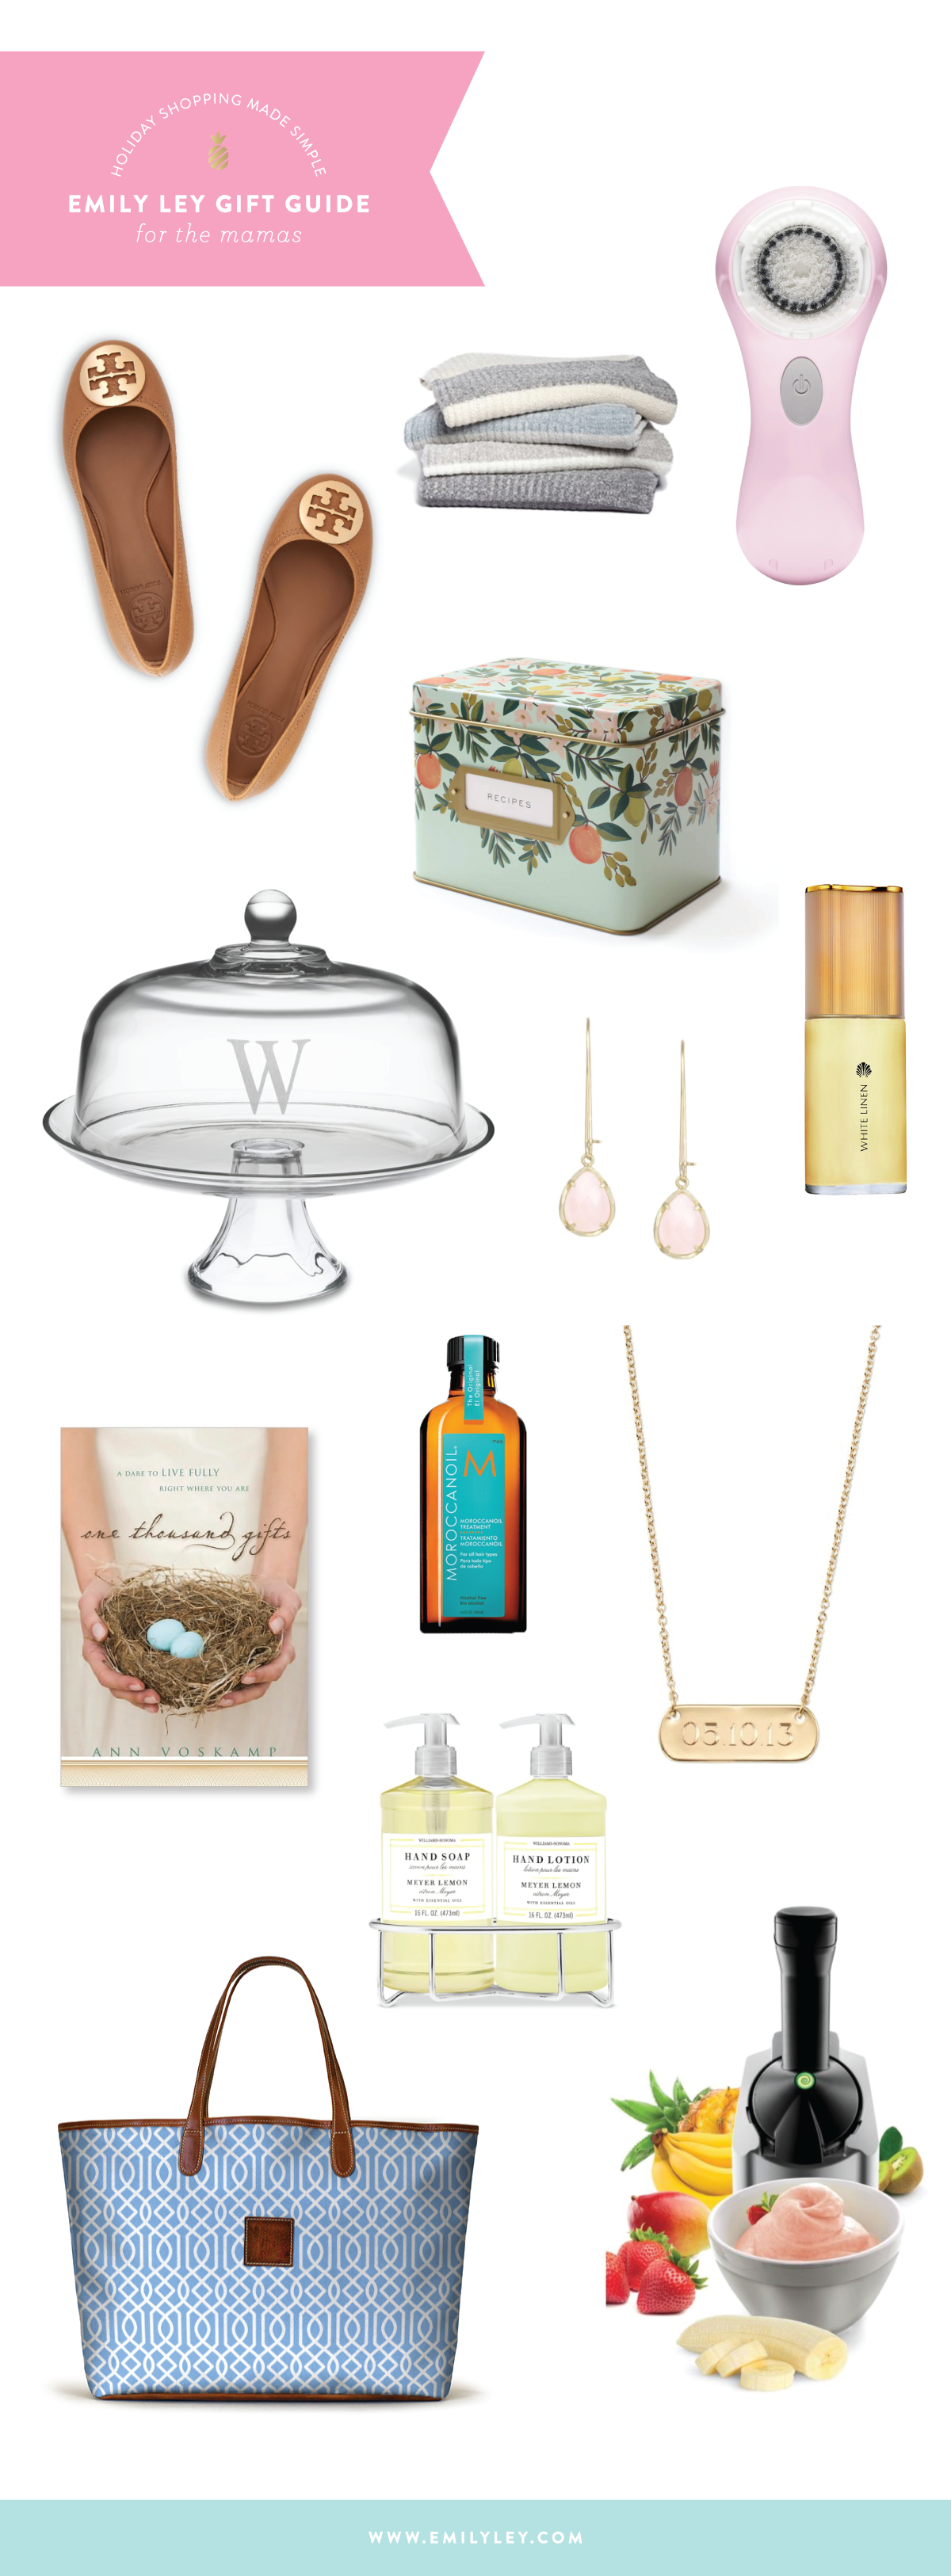 Emily-Ley-Gift-Guide-Mamas.png